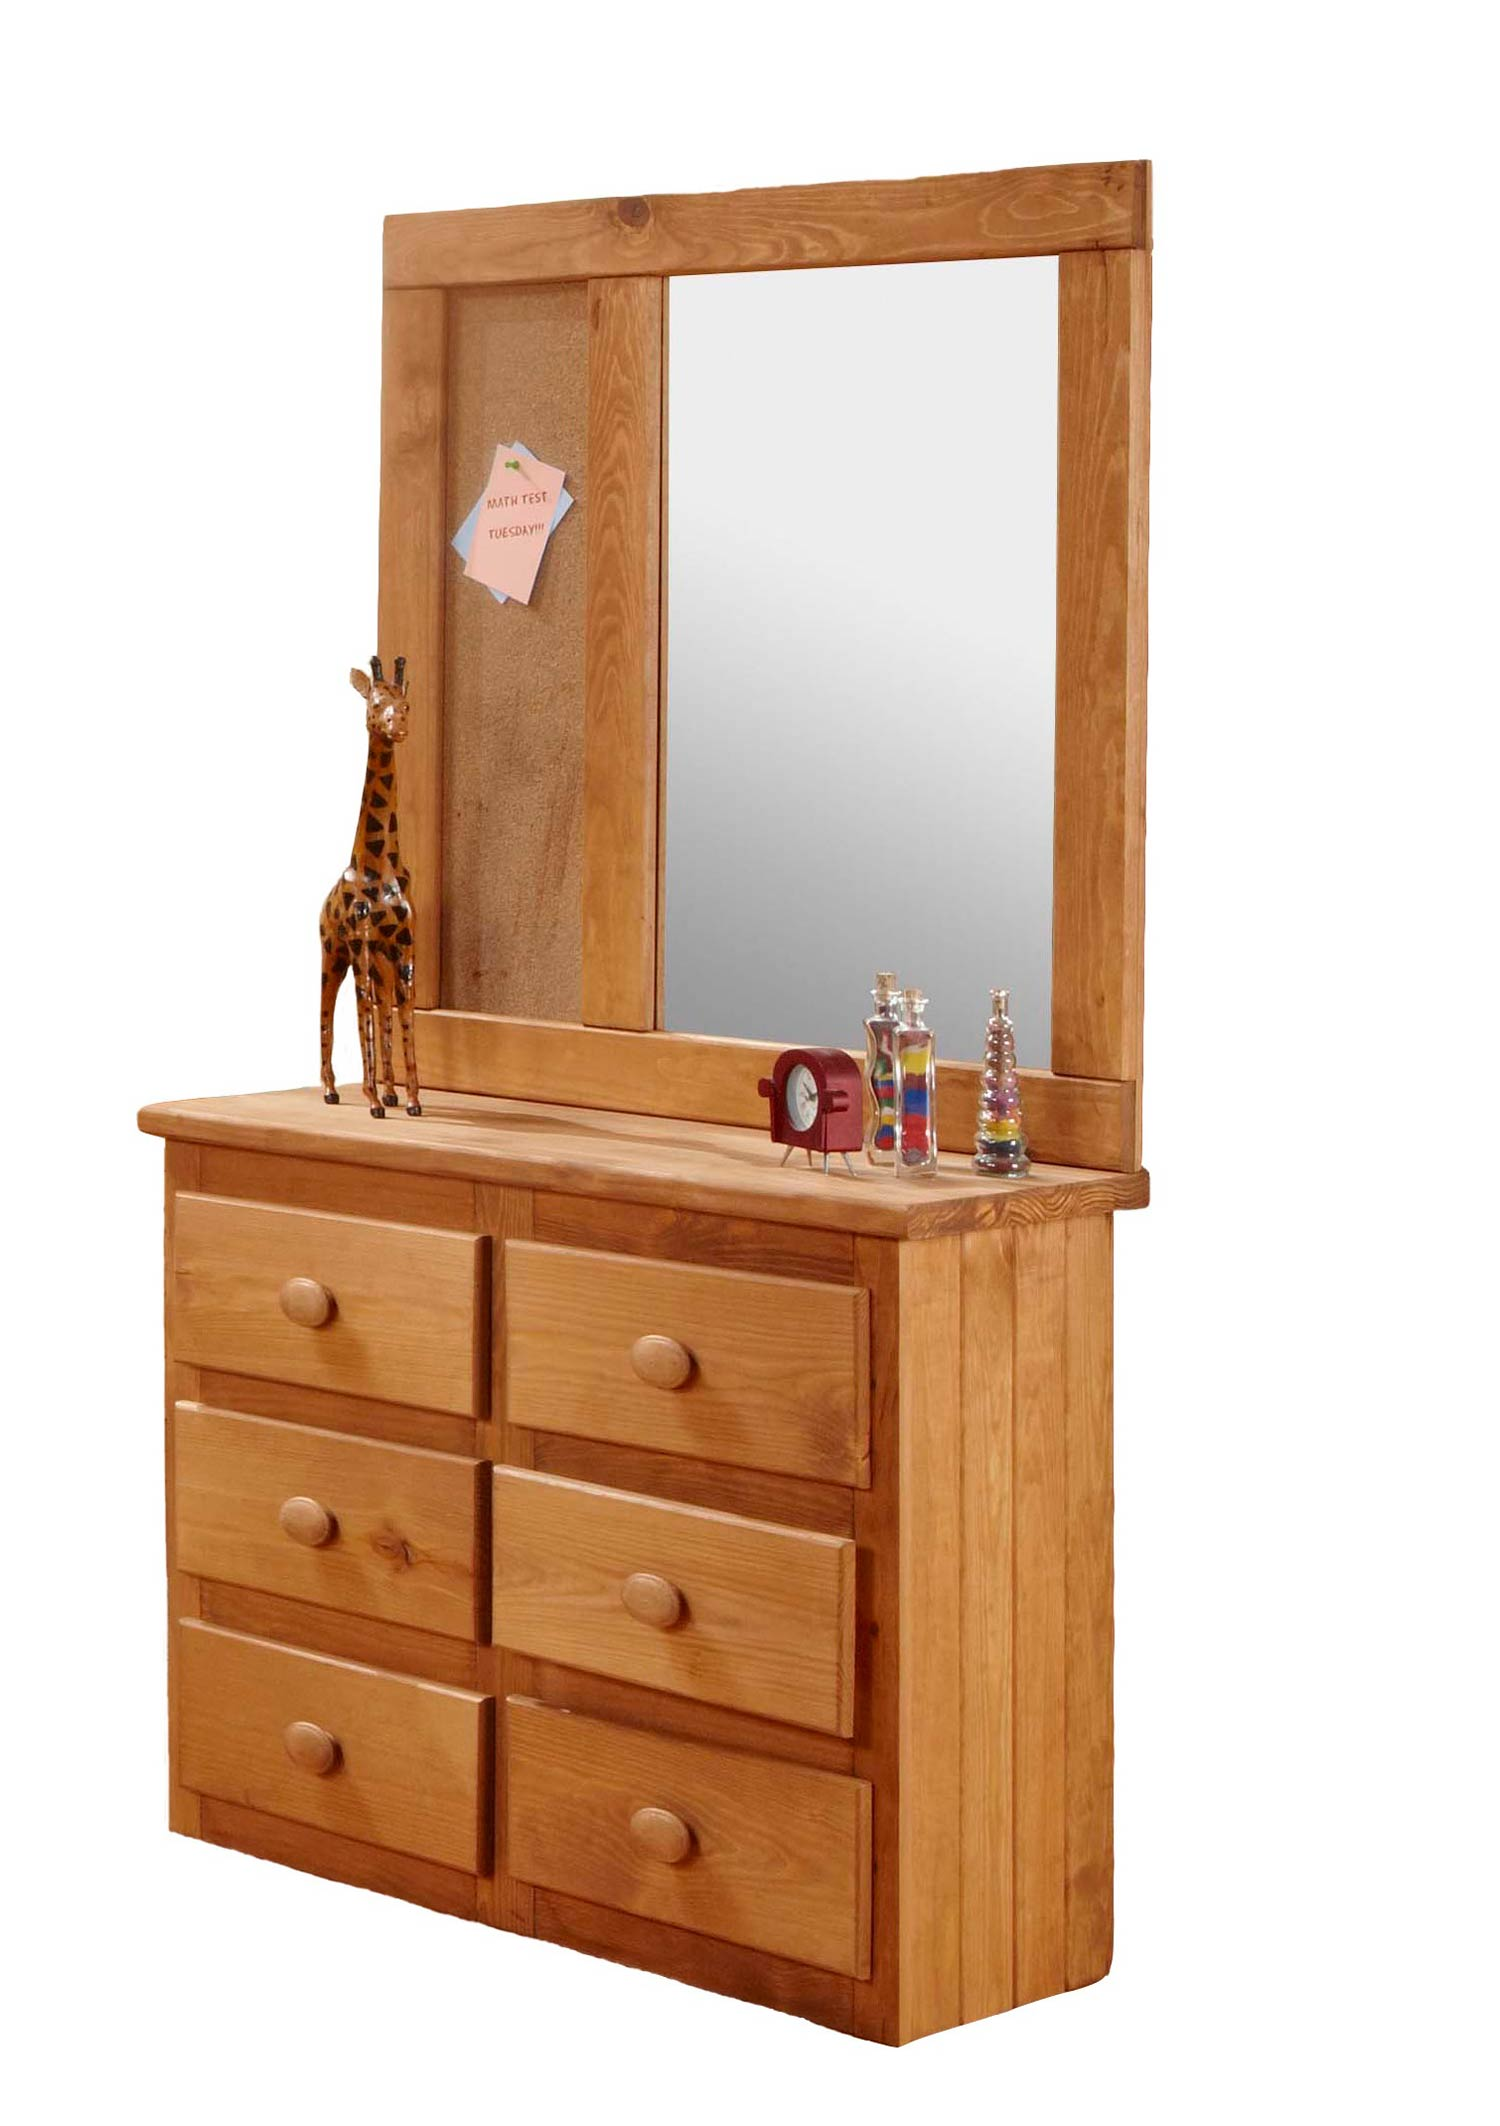 Chelsea Home 31006-101 Mini 6 Drawer Dresser with Landscape Mirror - Ginger Stain